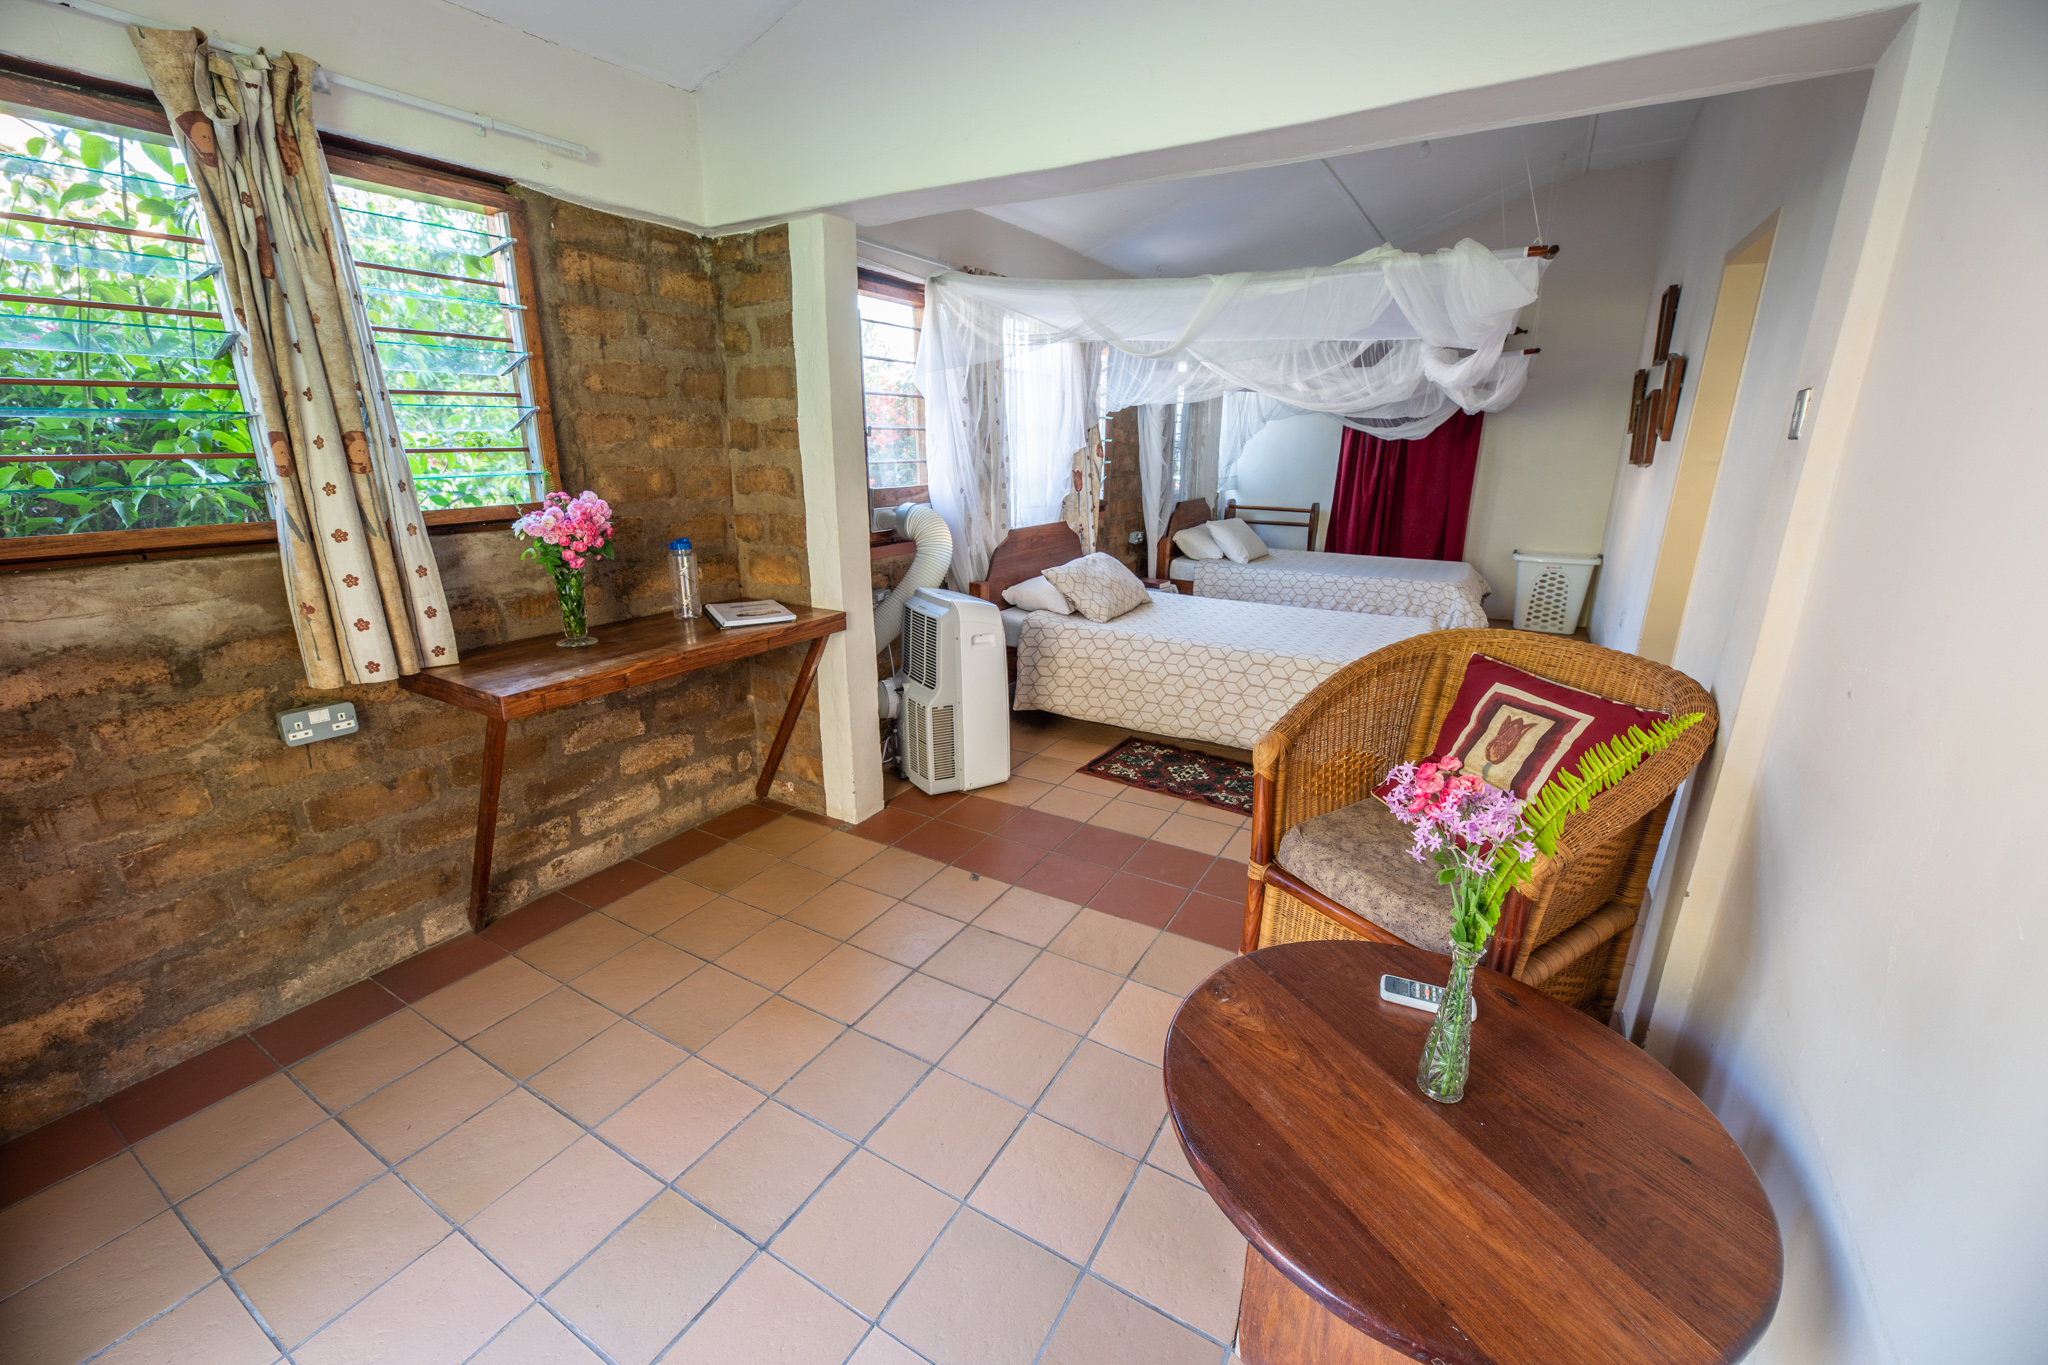 K7400 - Comfortable rooms in our Wellness Lodge including a private bath and housekeeping services.